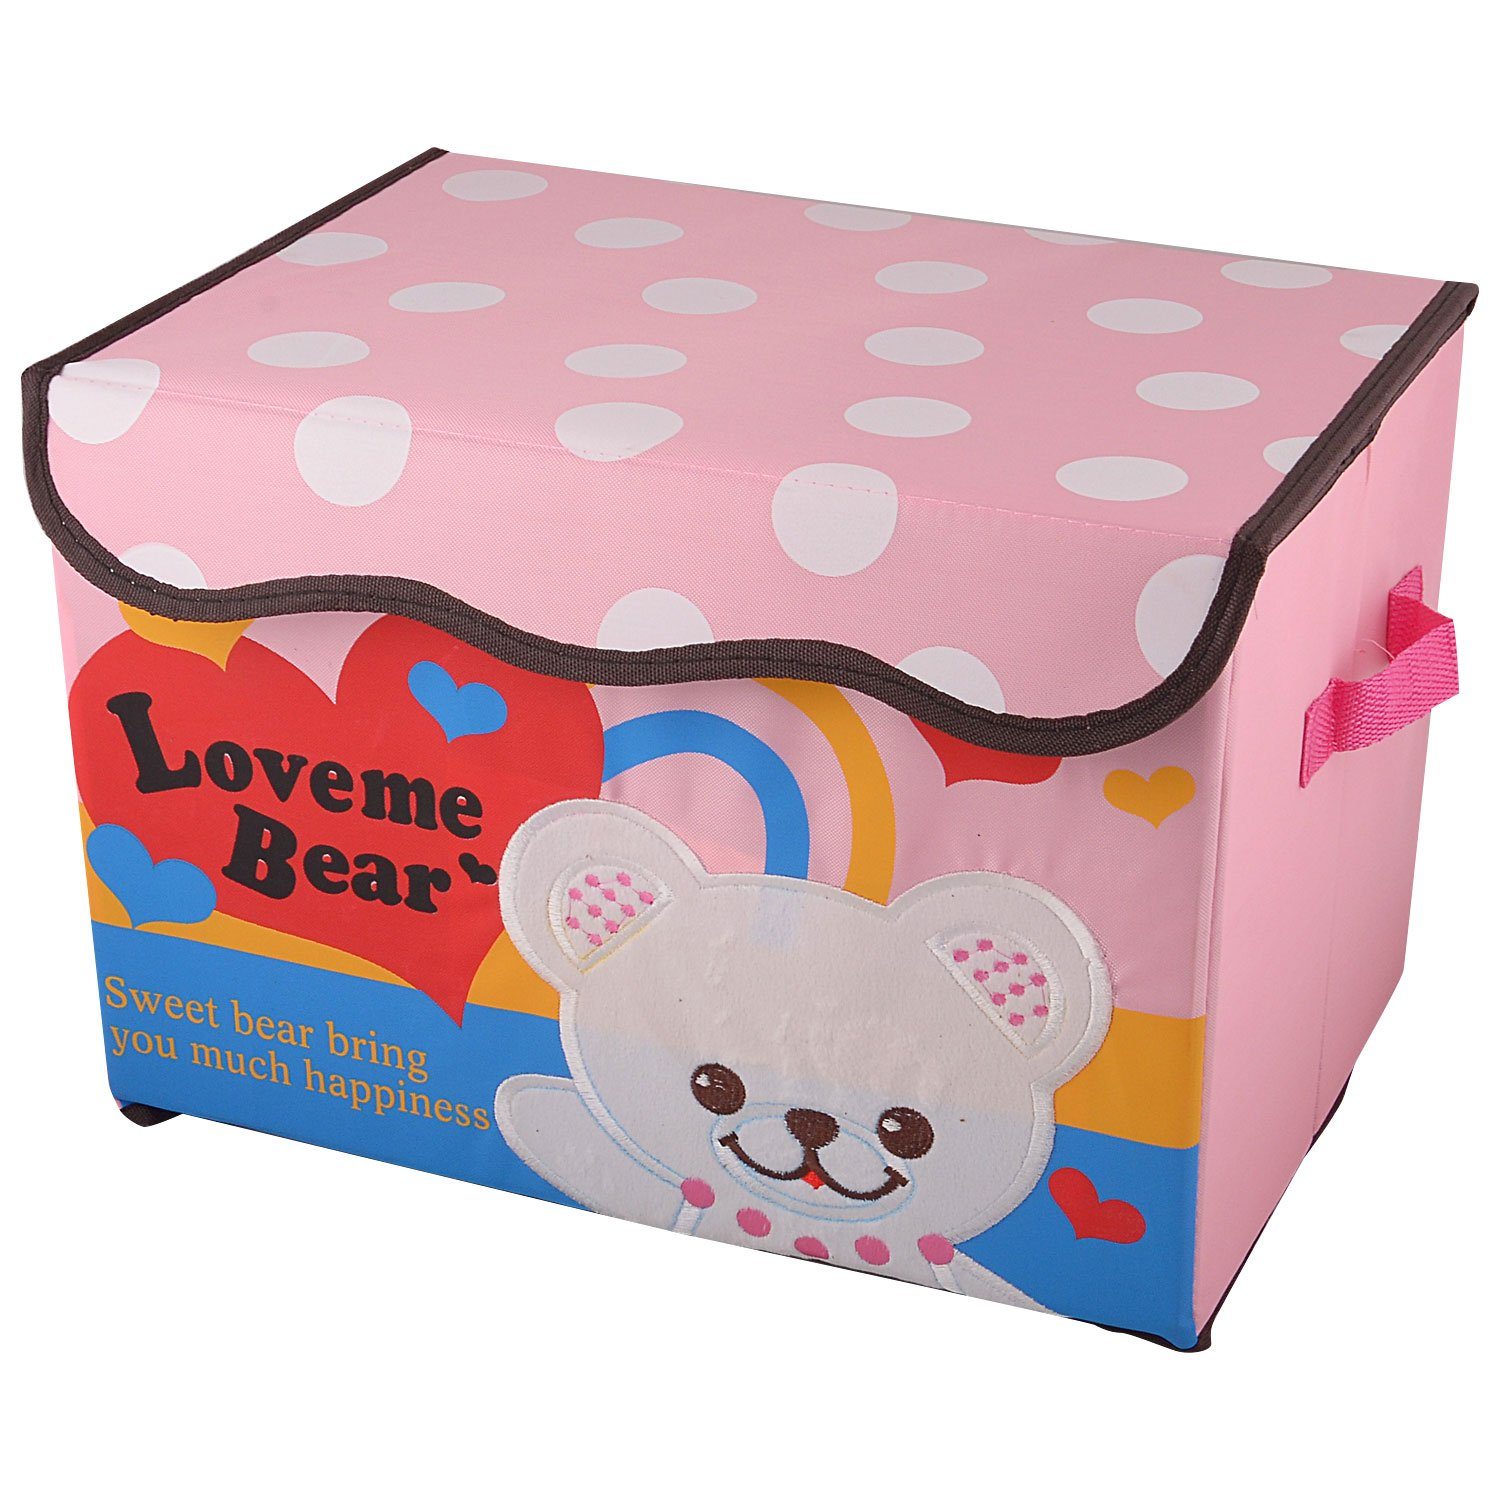 Buy Portable Foldable Baby toy storage / Baby laundary box - Easy to wash Online at Low Prices in India - Amazon.in  sc 1 st  Amazon.in & Buy Portable Foldable Baby toy storage / Baby laundary box - Easy ...